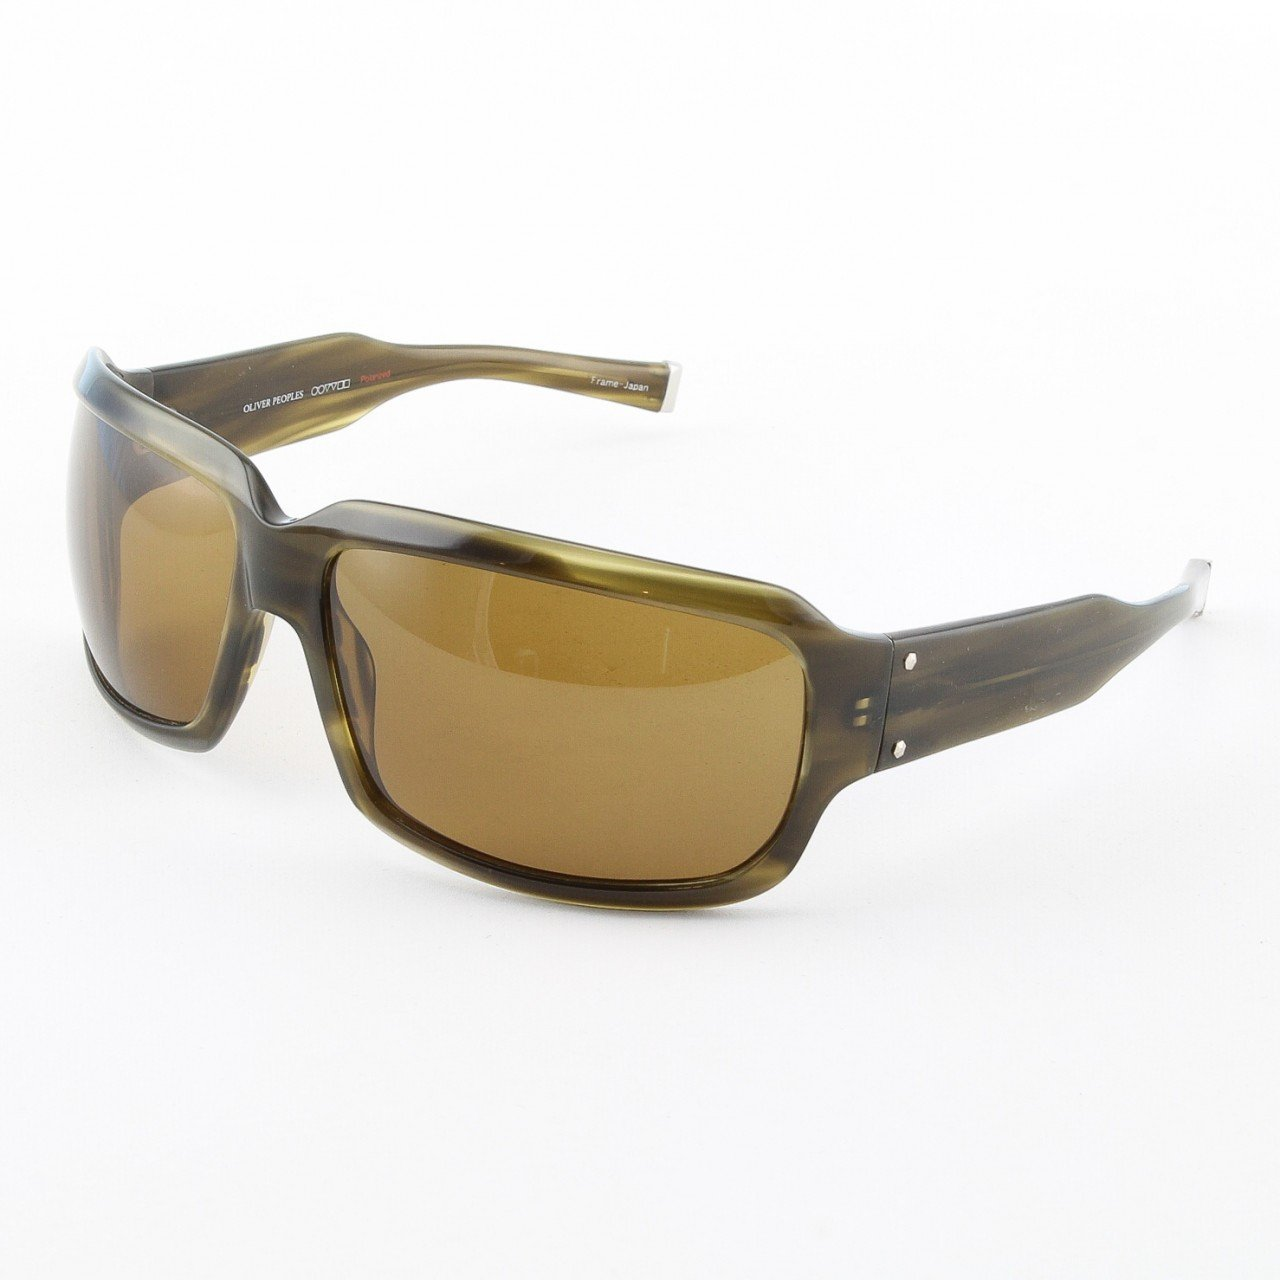 Oliver Peoples Contraband Sunglasses Col. OT Olive Tortoise with Green Polarized Lenses